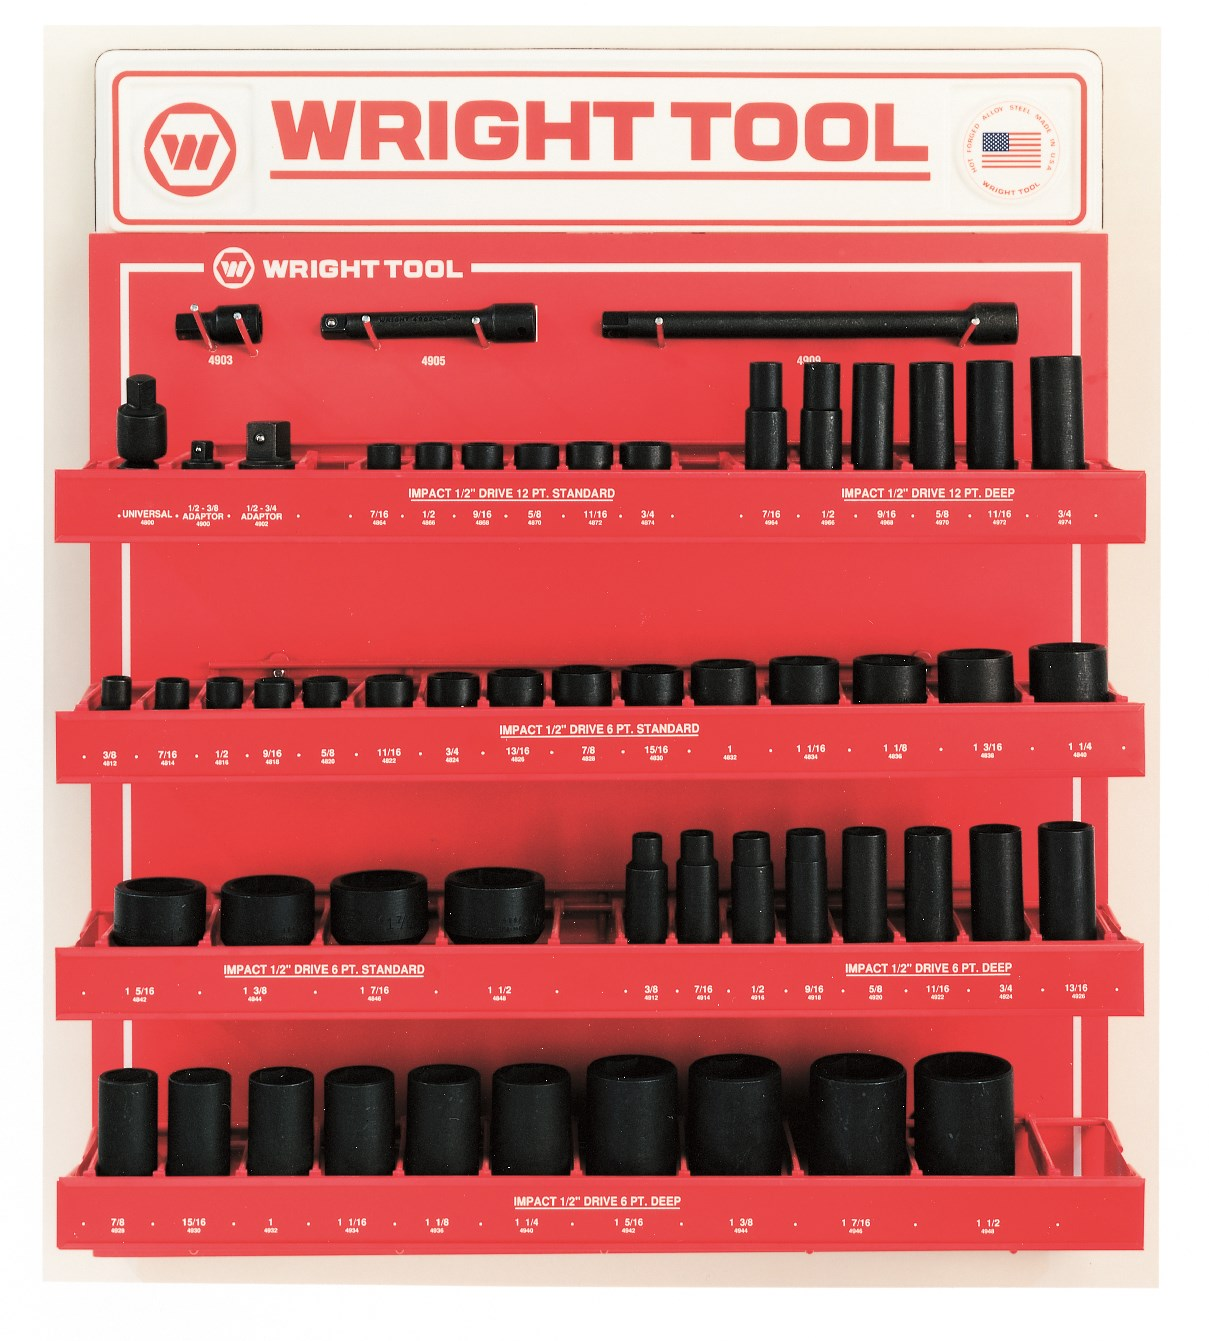 Wright Tool D953 55 Piece 1/2-inch Drive 6 & 12-Point Standard & Deep Impact Sockets & Attachments